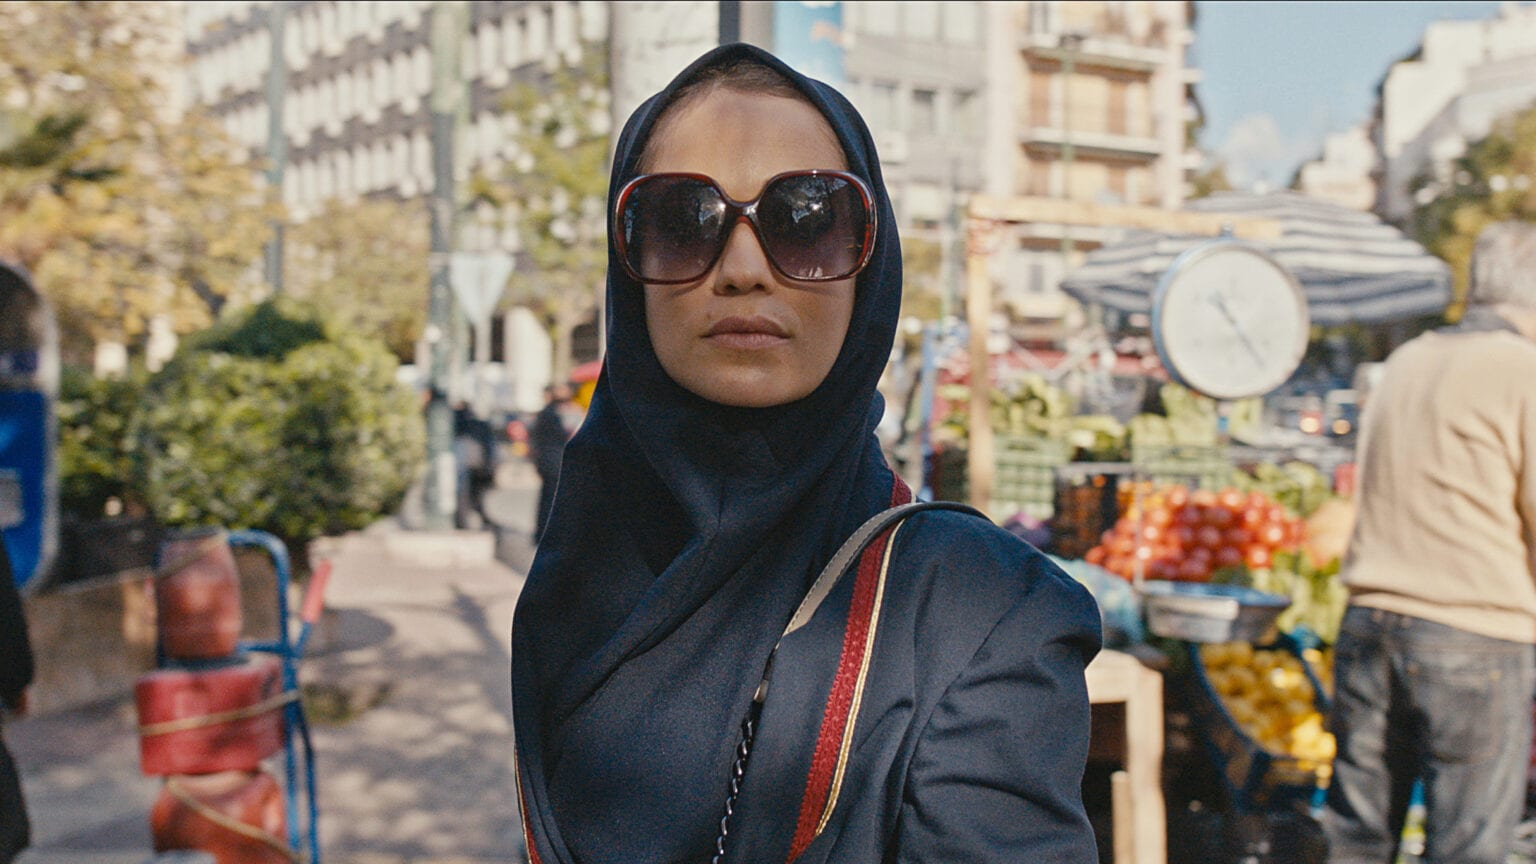 Tehran is an action-spy series coming soon to Apple TV+